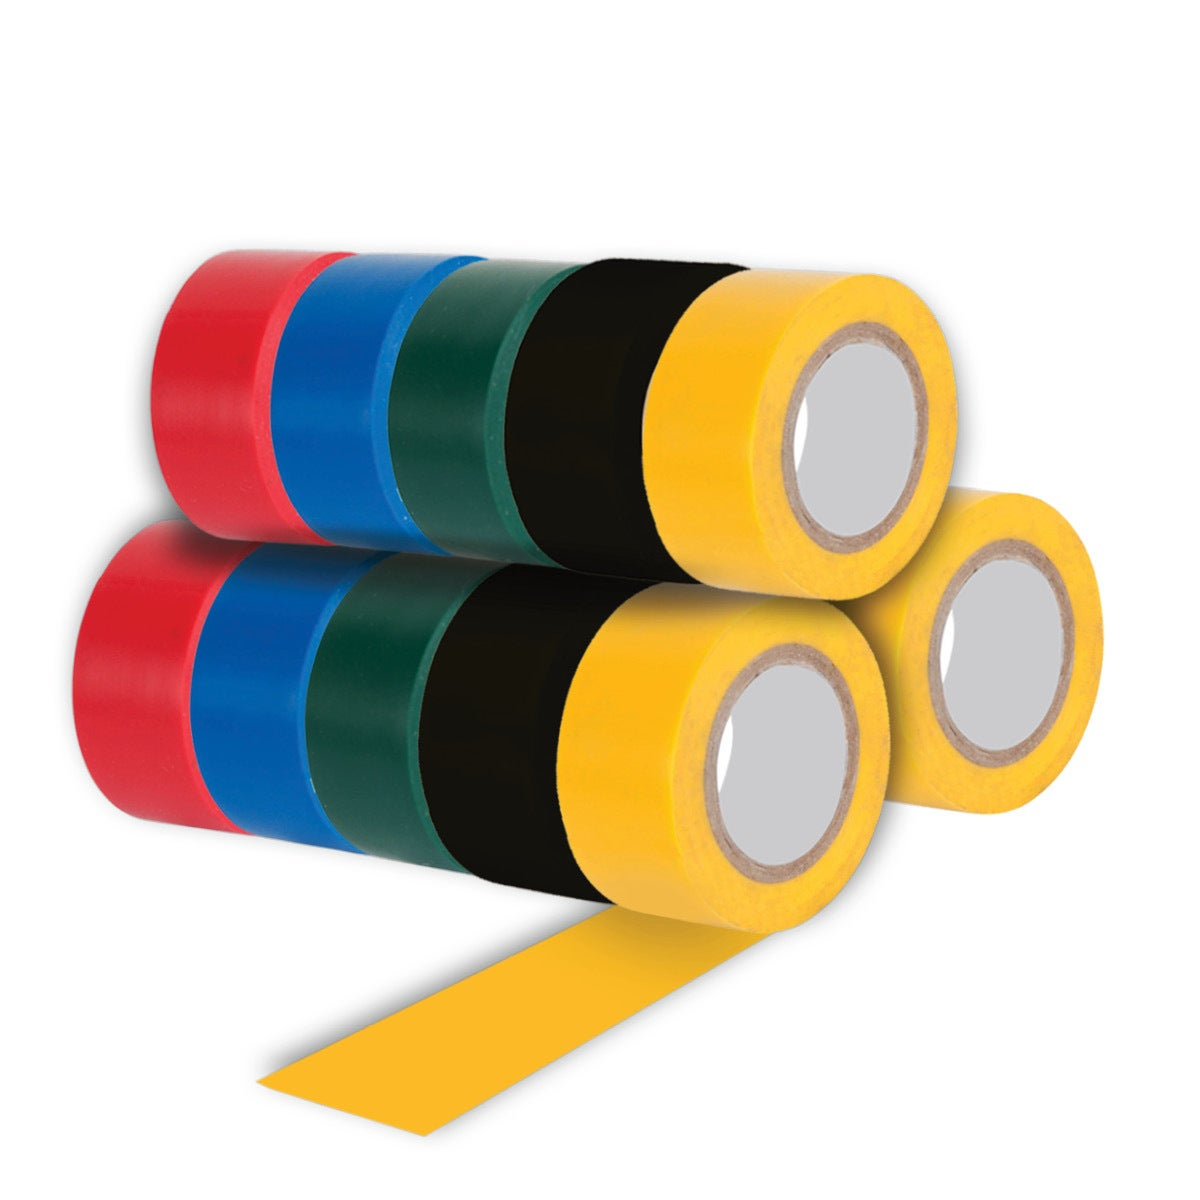 Handy Hardware®60PCE Electrical Tape Multi Colours Durable Strong 19mm x 3m